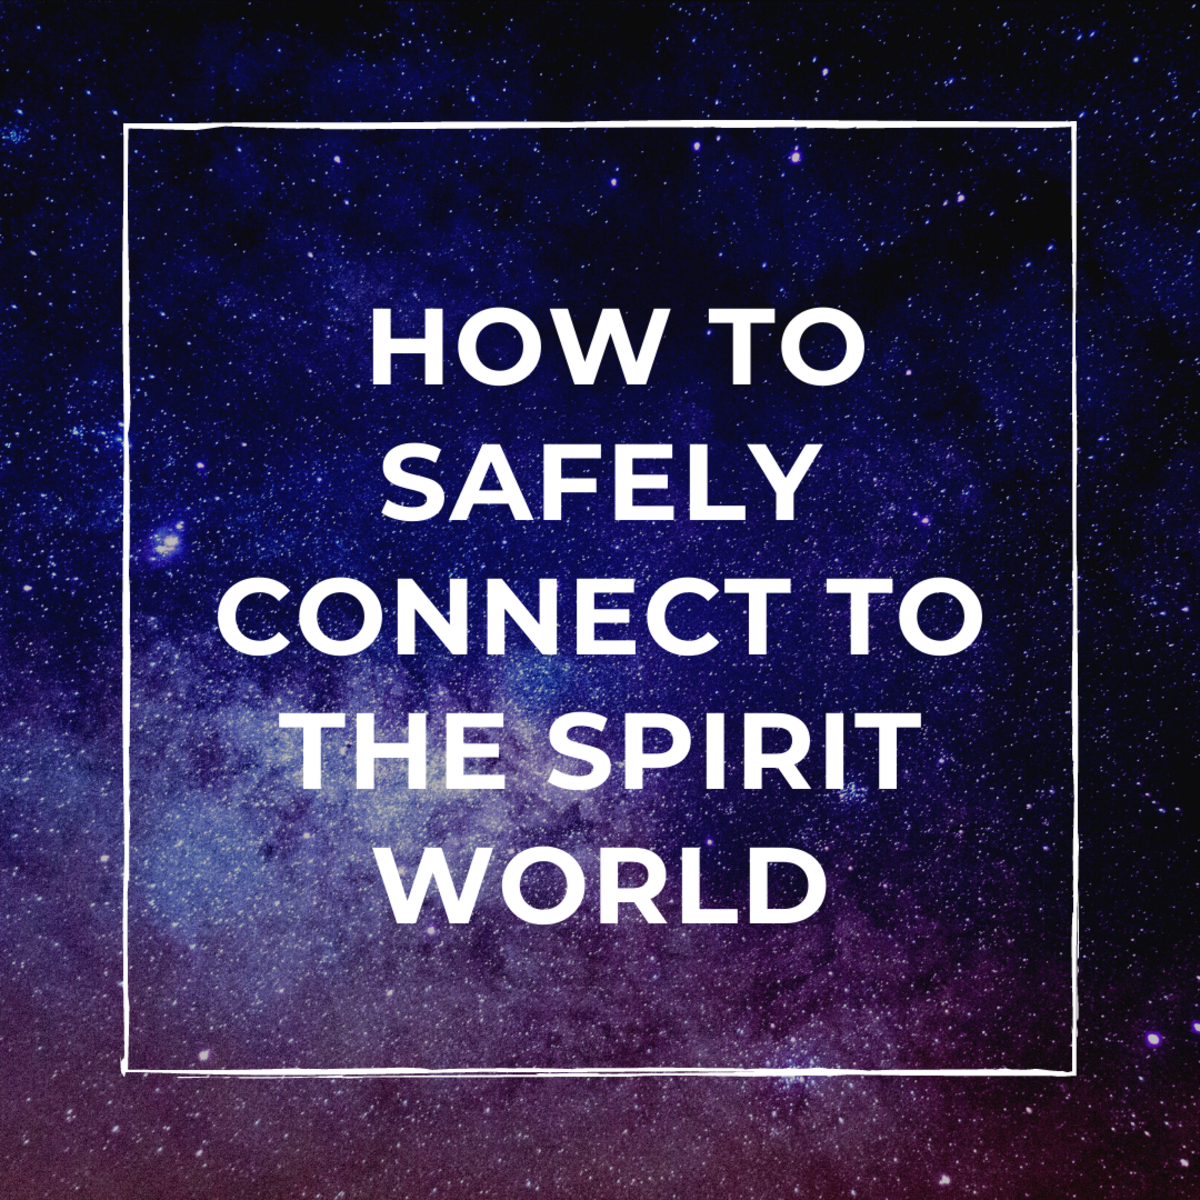 Learn how to connect with spirits, safely!